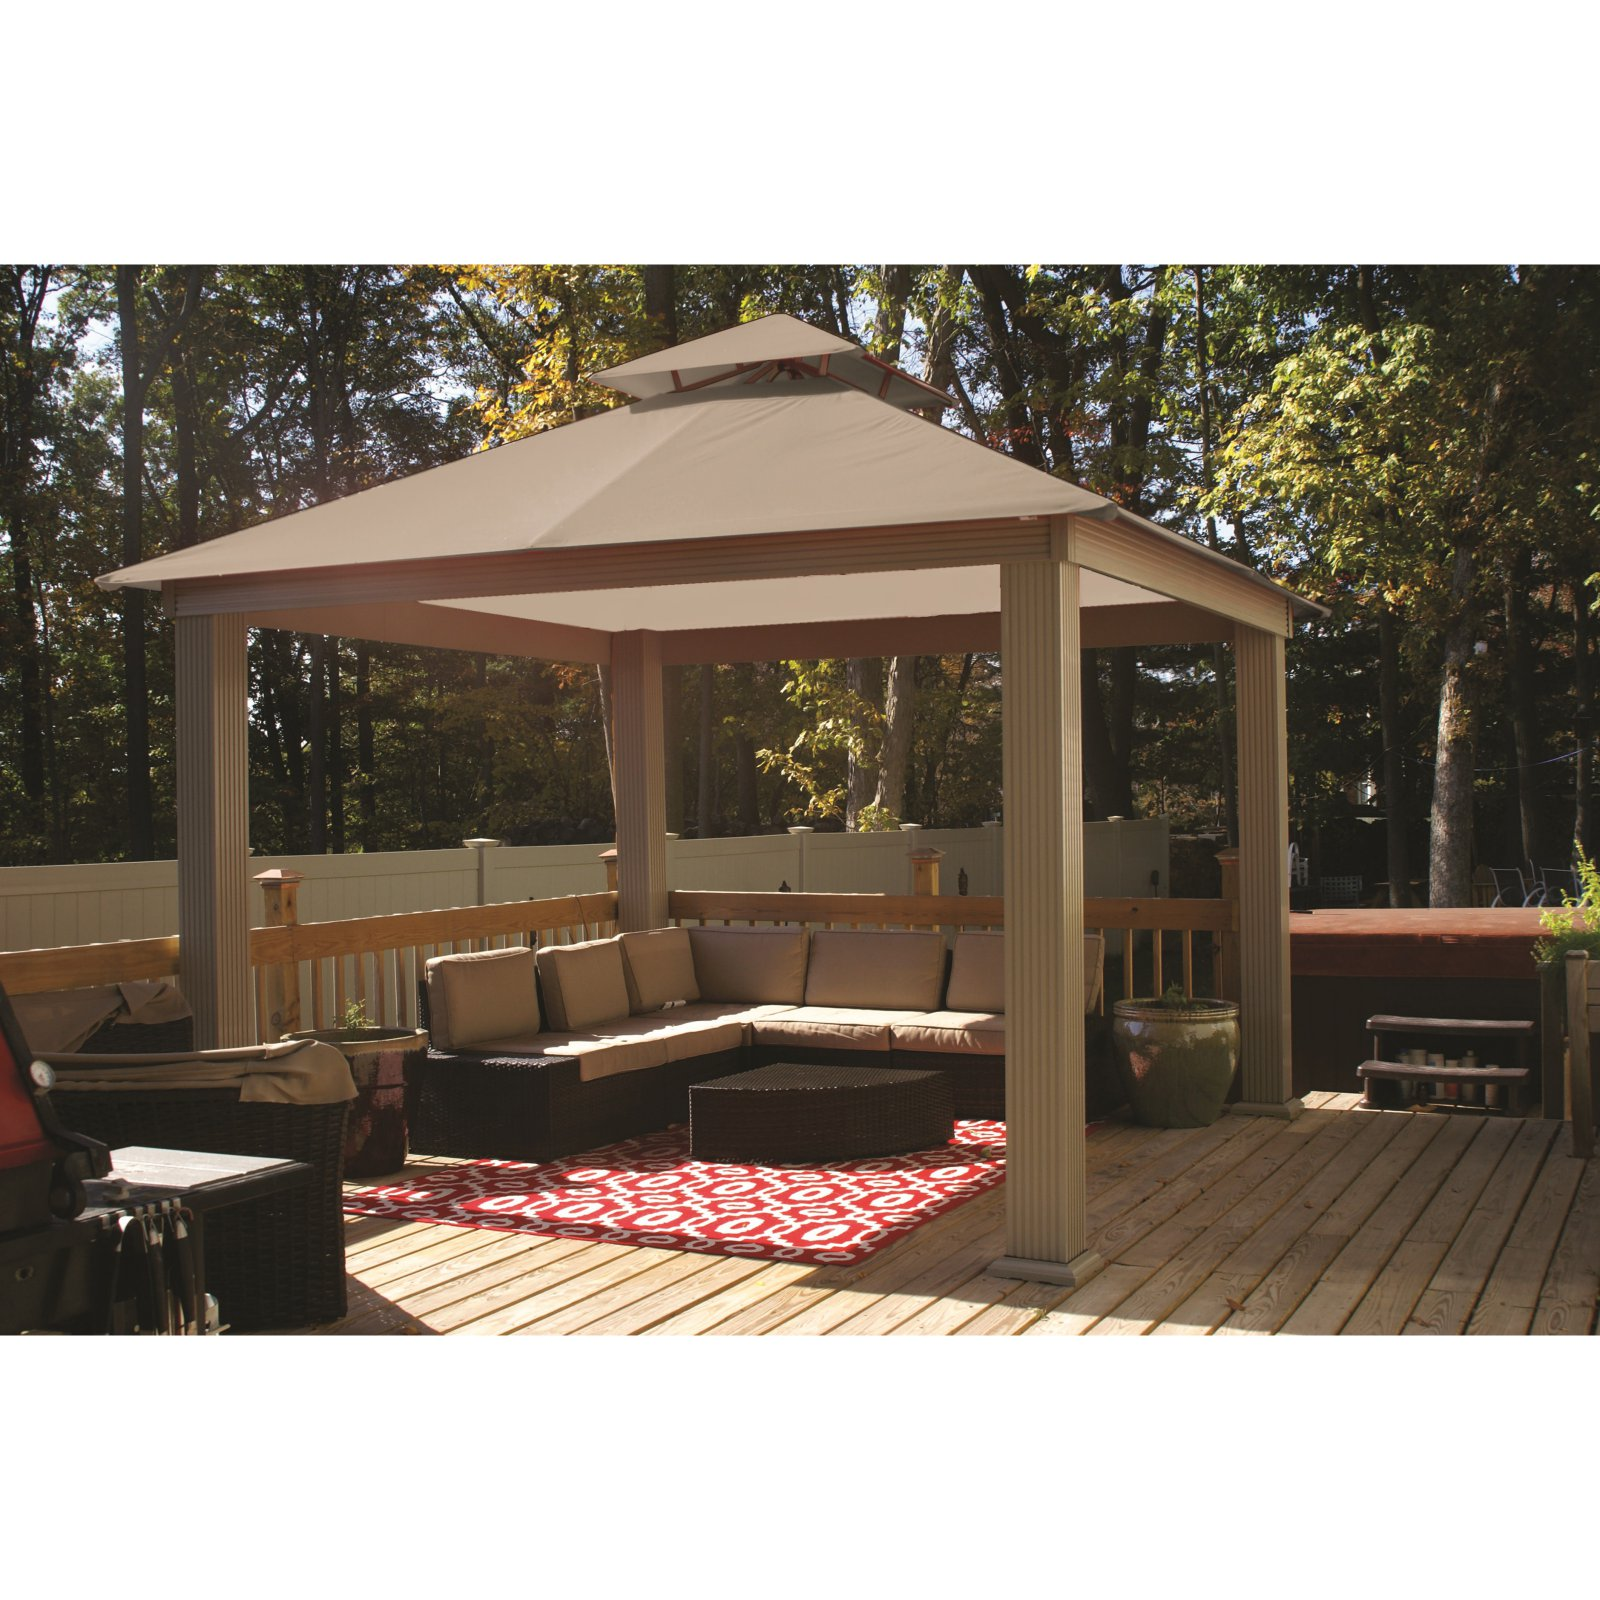 ACACIA by Riverstone Industries Square Gazebo Canopy